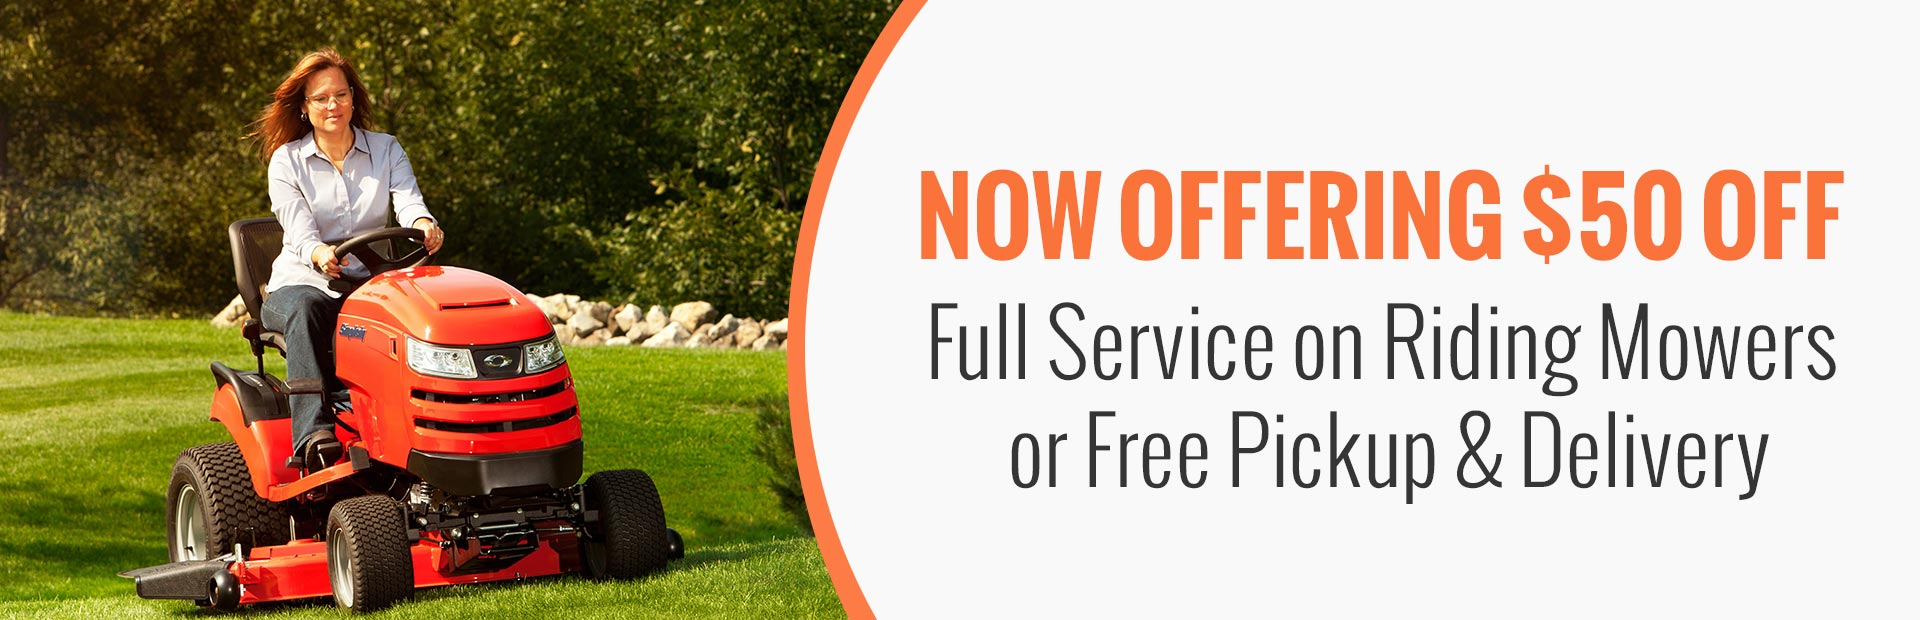 Now offering $50 off full service on riding mowers or free pickup & delivery. Click here for details